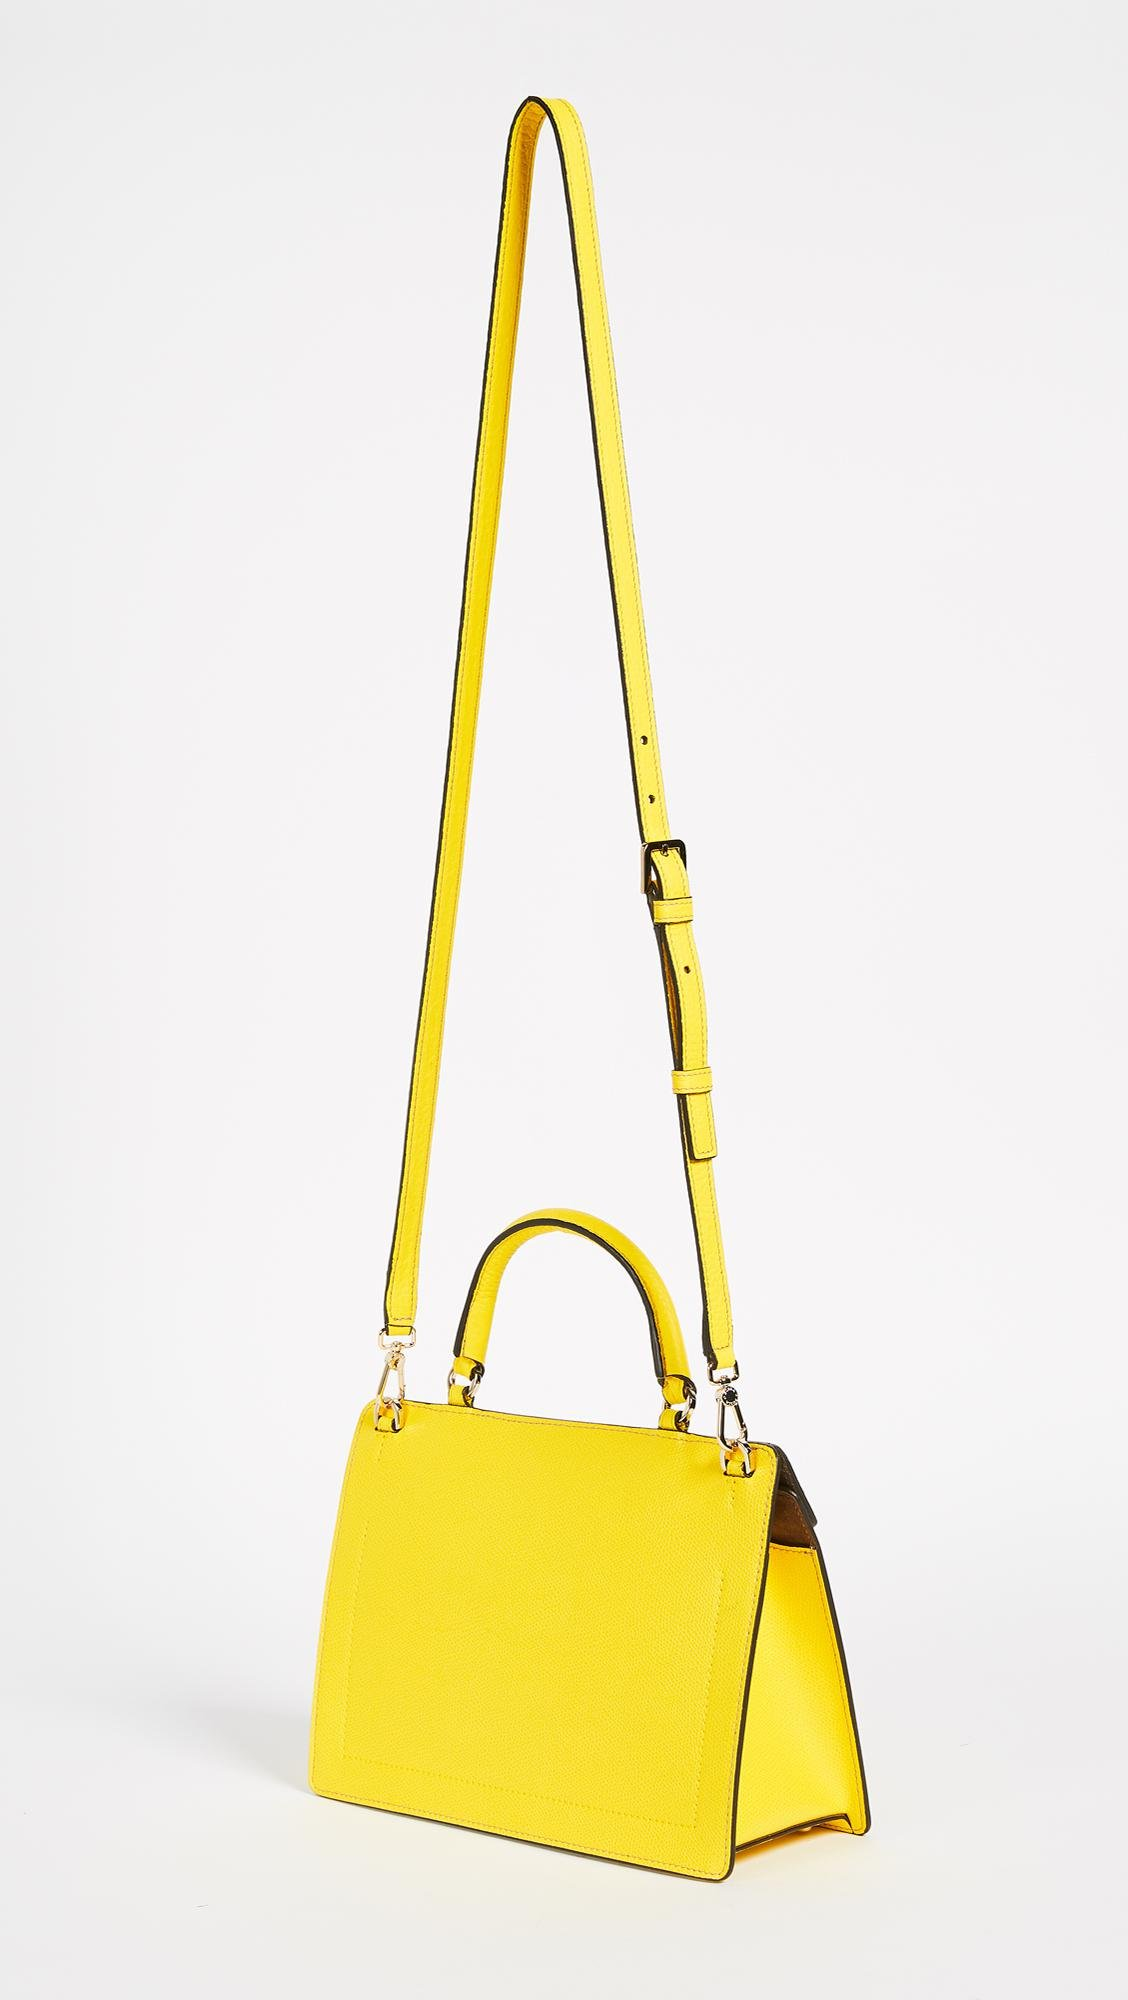 ce1bc34fef10d Lyst - Furla Like Small Top Handle Bag in Yellow